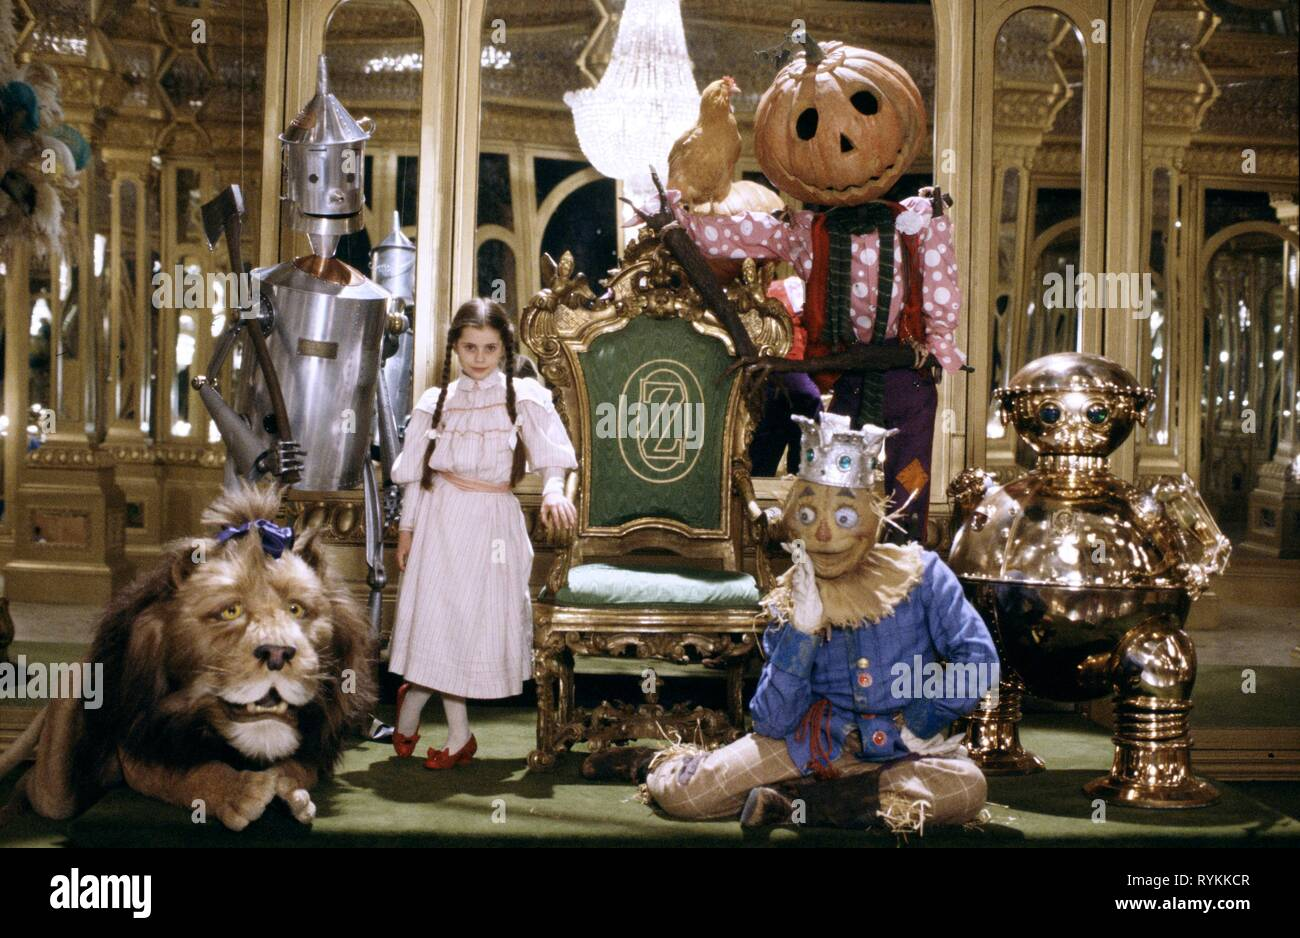 FAIRUZA BALK, RETURN TO OZ, 1985 - Stock Image